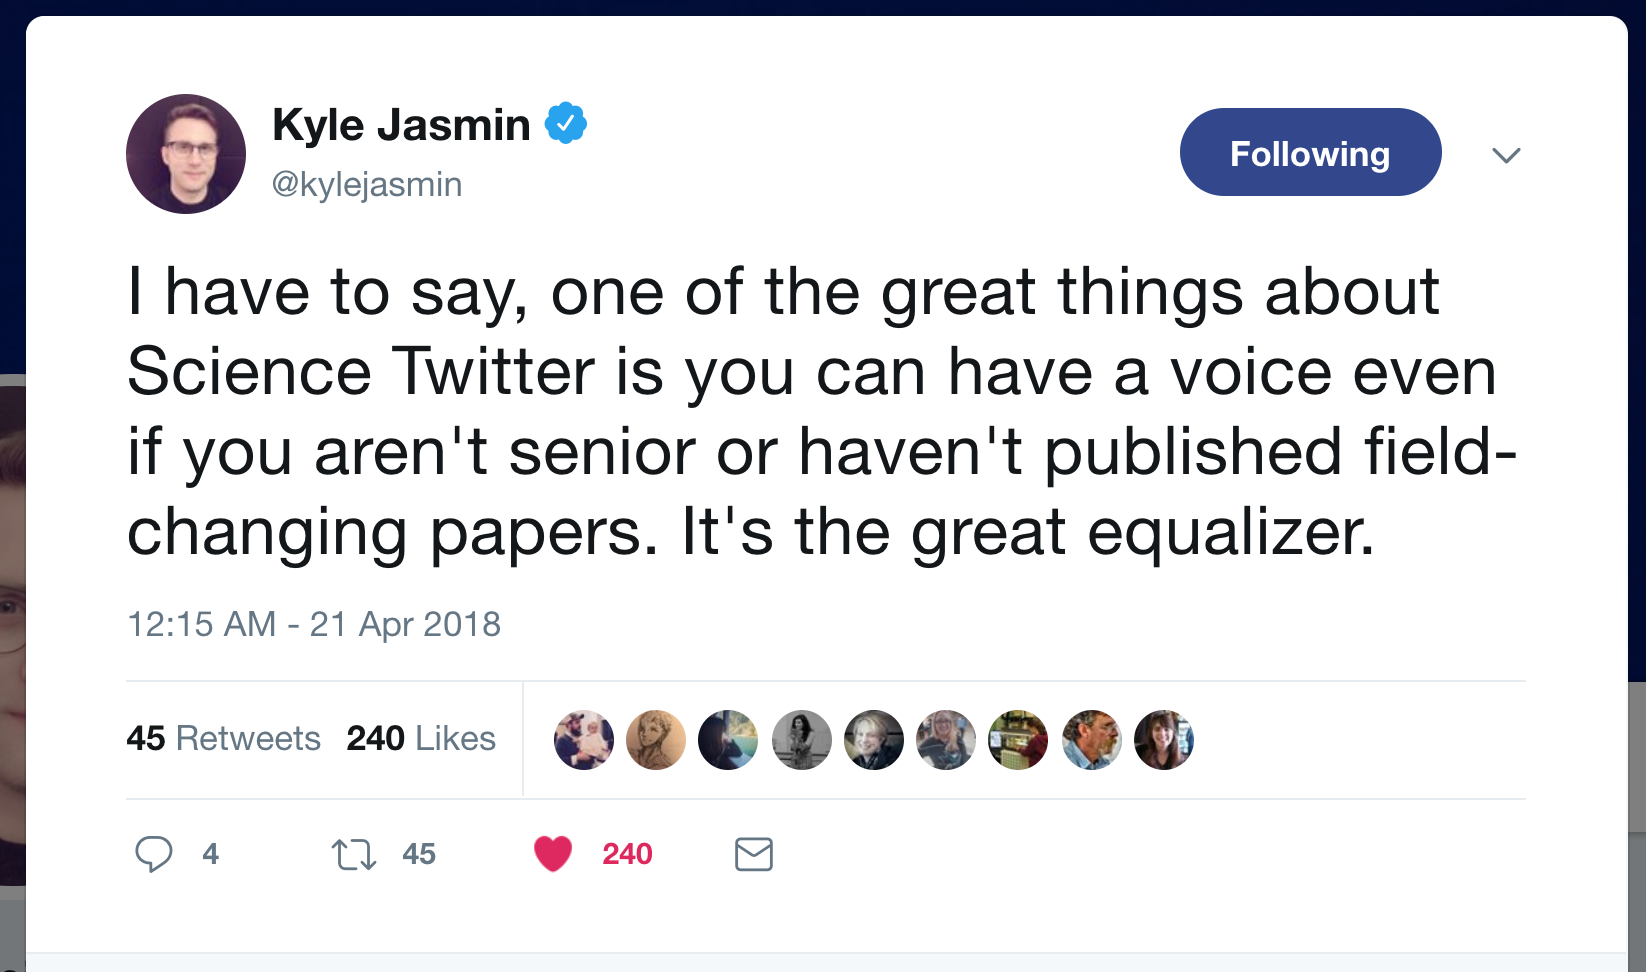 Tweet by Kyle Jasmin